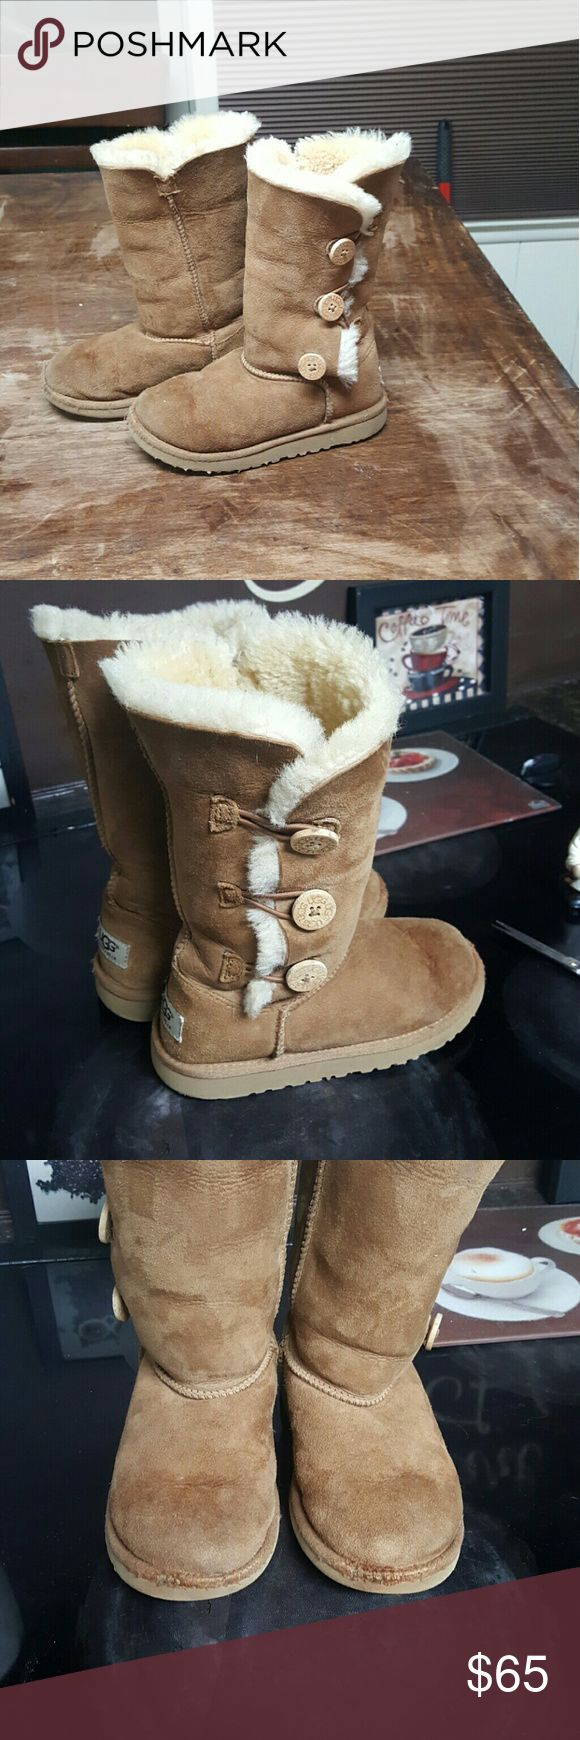 Childrens UGG Bailey Boots Size 1 bailey Ugg Boots. They are in good shape. Toes are a little worn not too noticeable when worn. UGG Shoes Boots